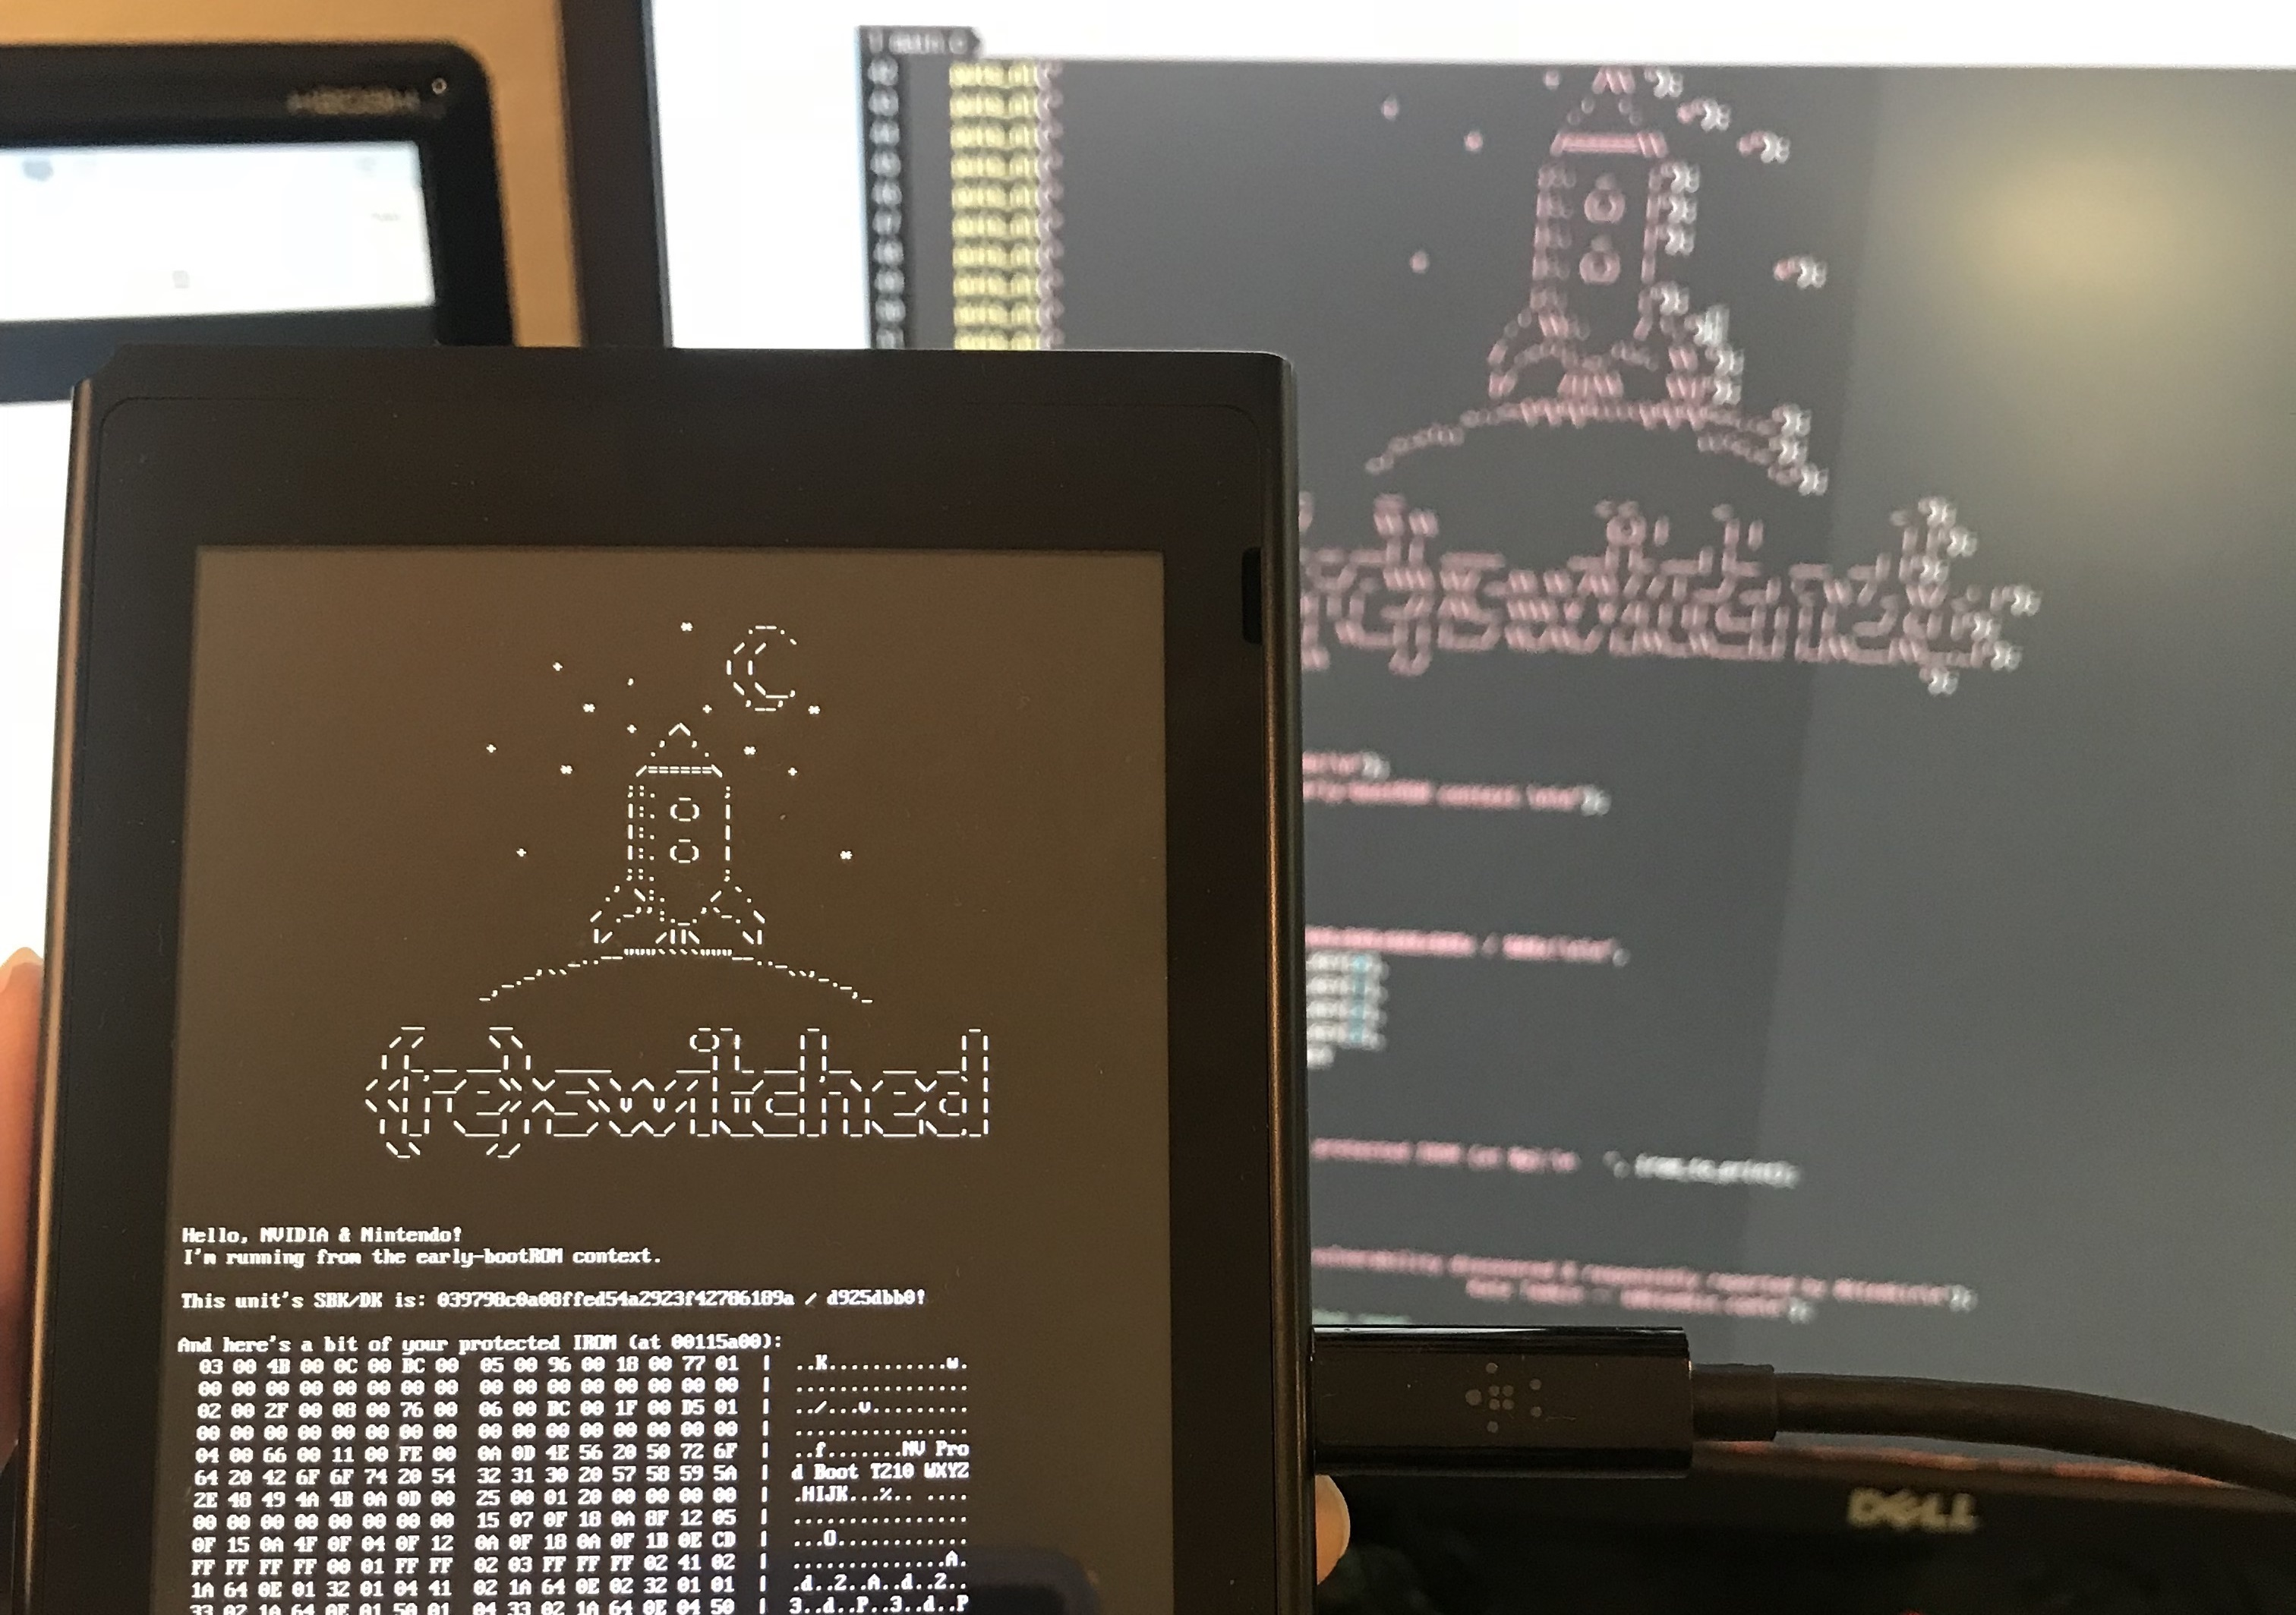 Nintendo Switch Permanent Hardware Hack Released, Related To Full System Exploit